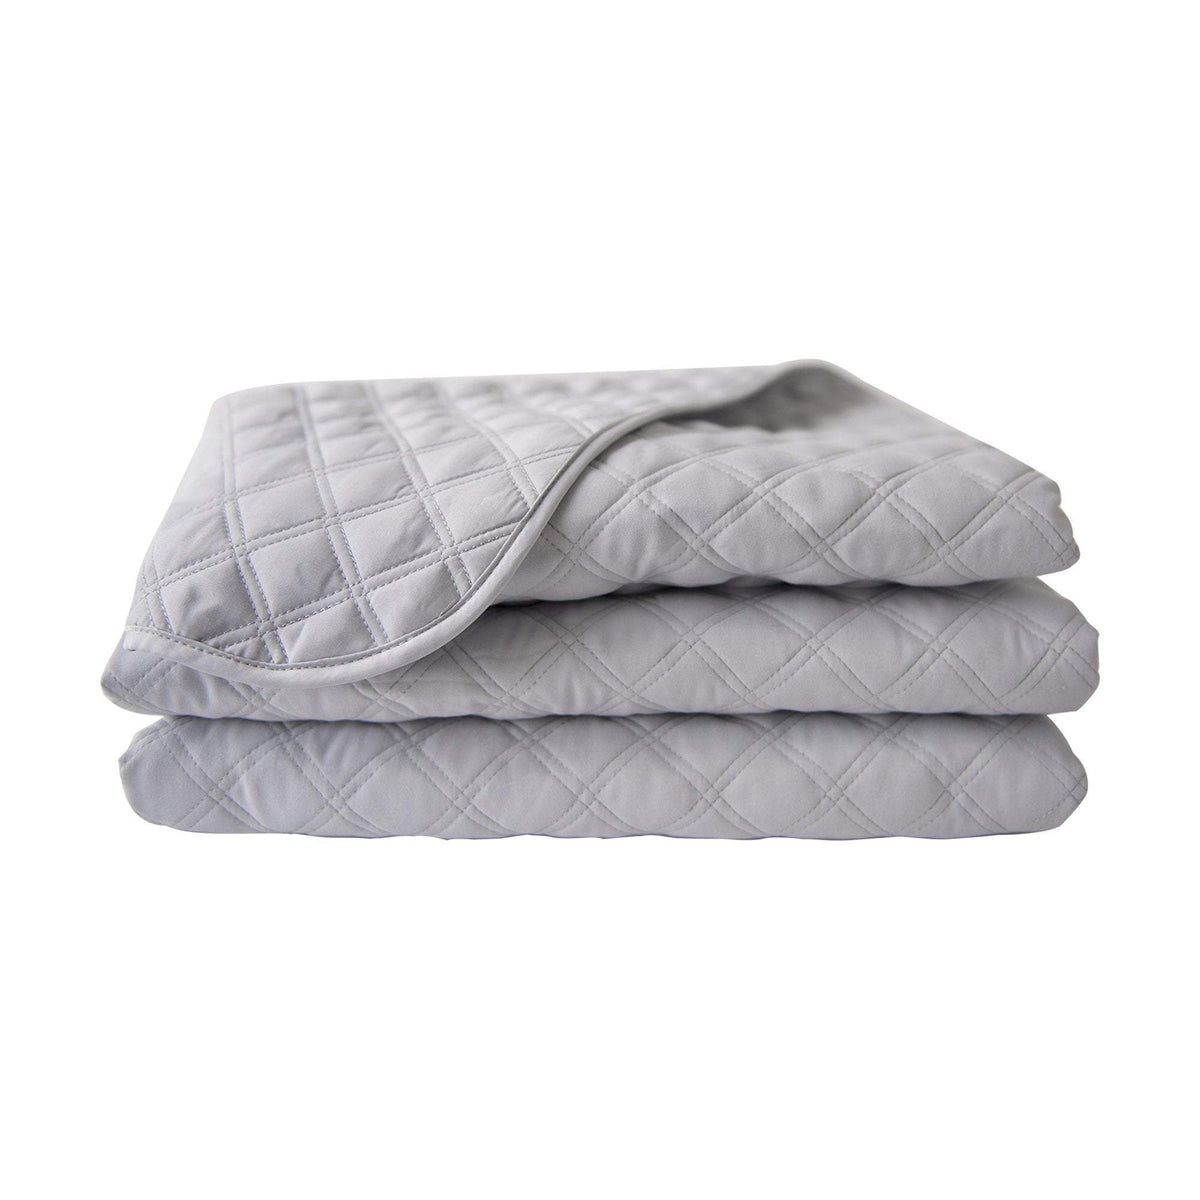 Sposh Microfiber Quilted Blanket, Dove Grey